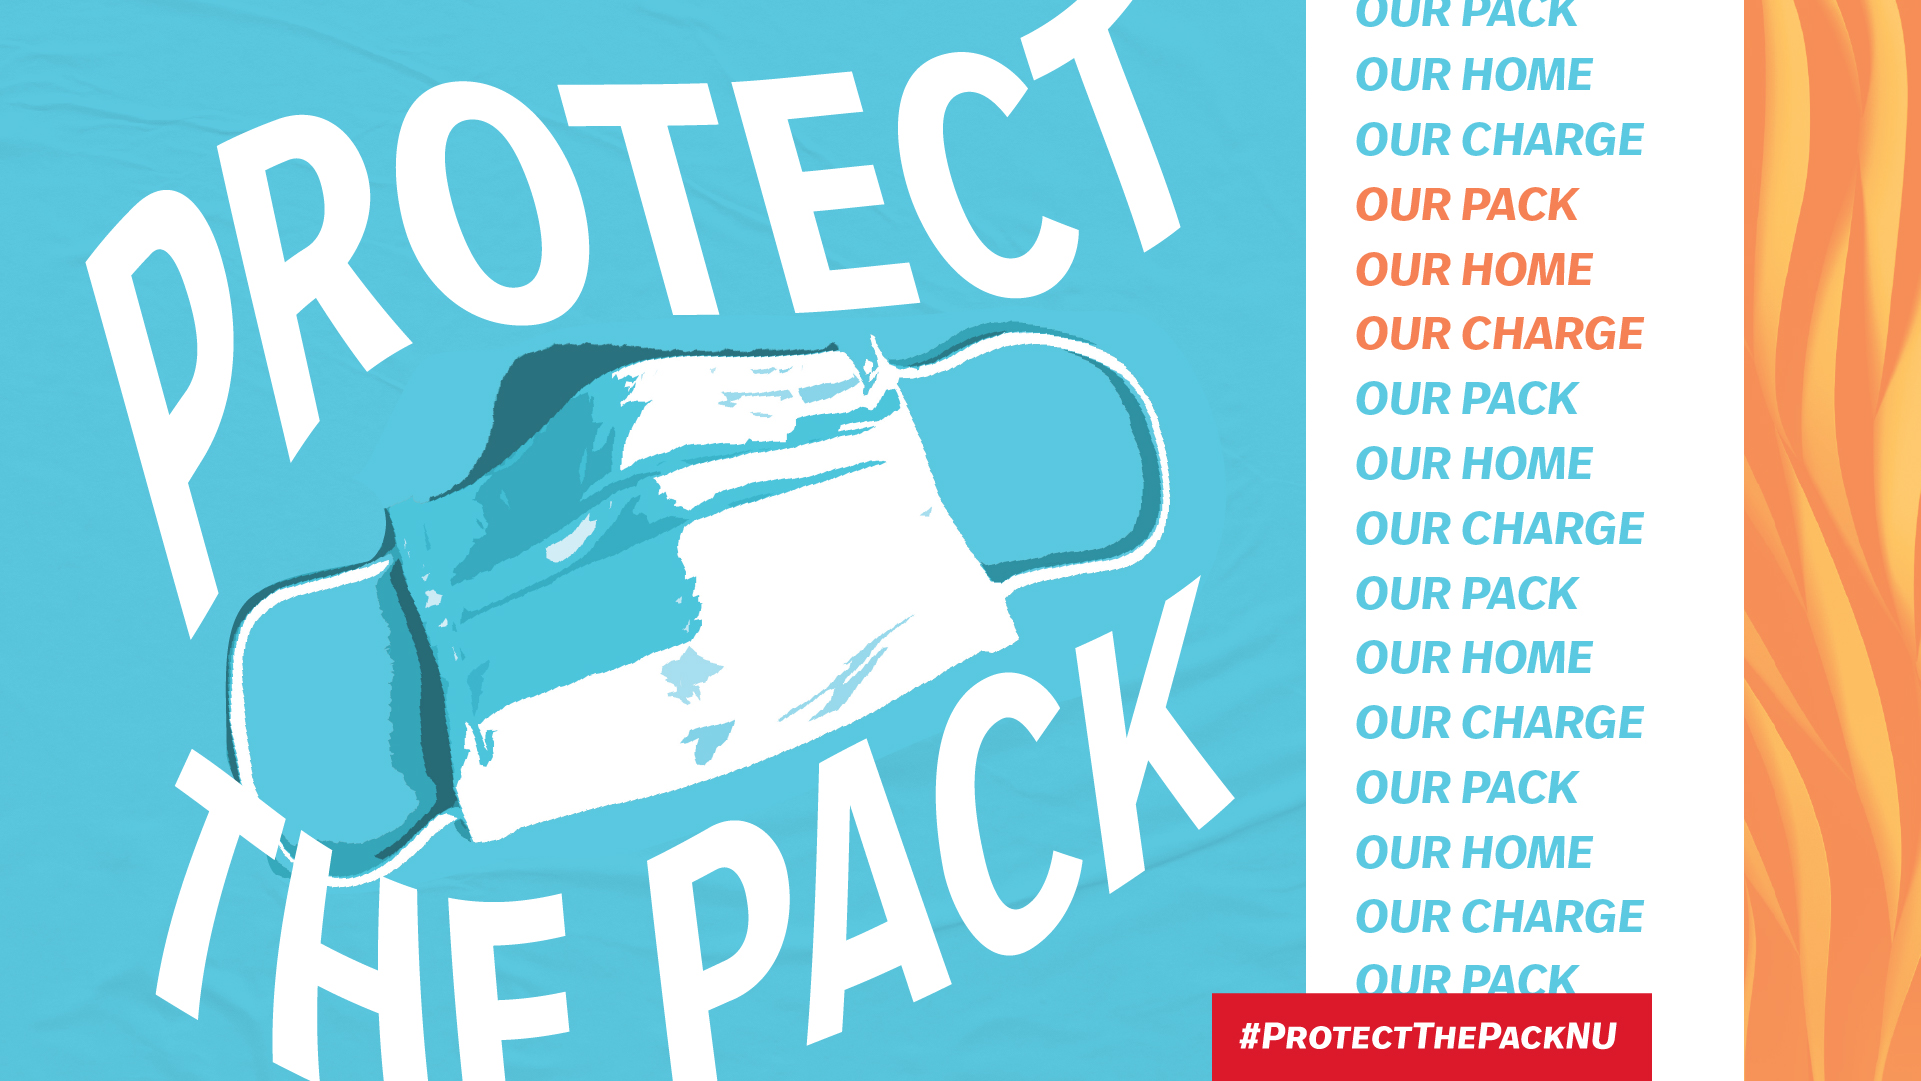 graphic saying protect the pack and lead on